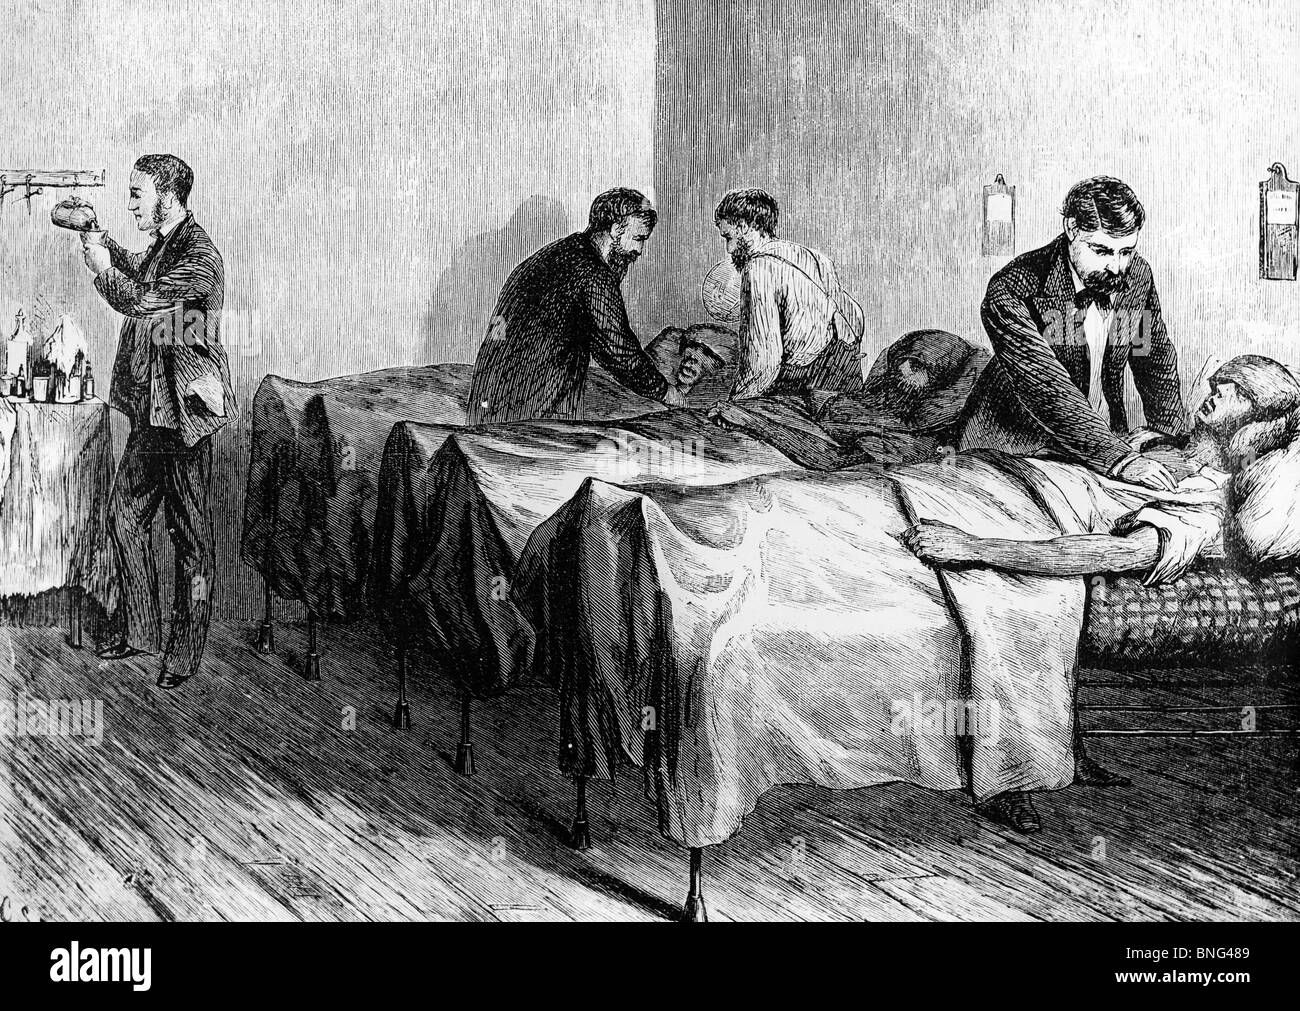 Where Are the Nurses? Heat Wave in NYC: Sun-Stuck Patients at the Center Street Hospital by unknown artist, 1872 - Stock Image